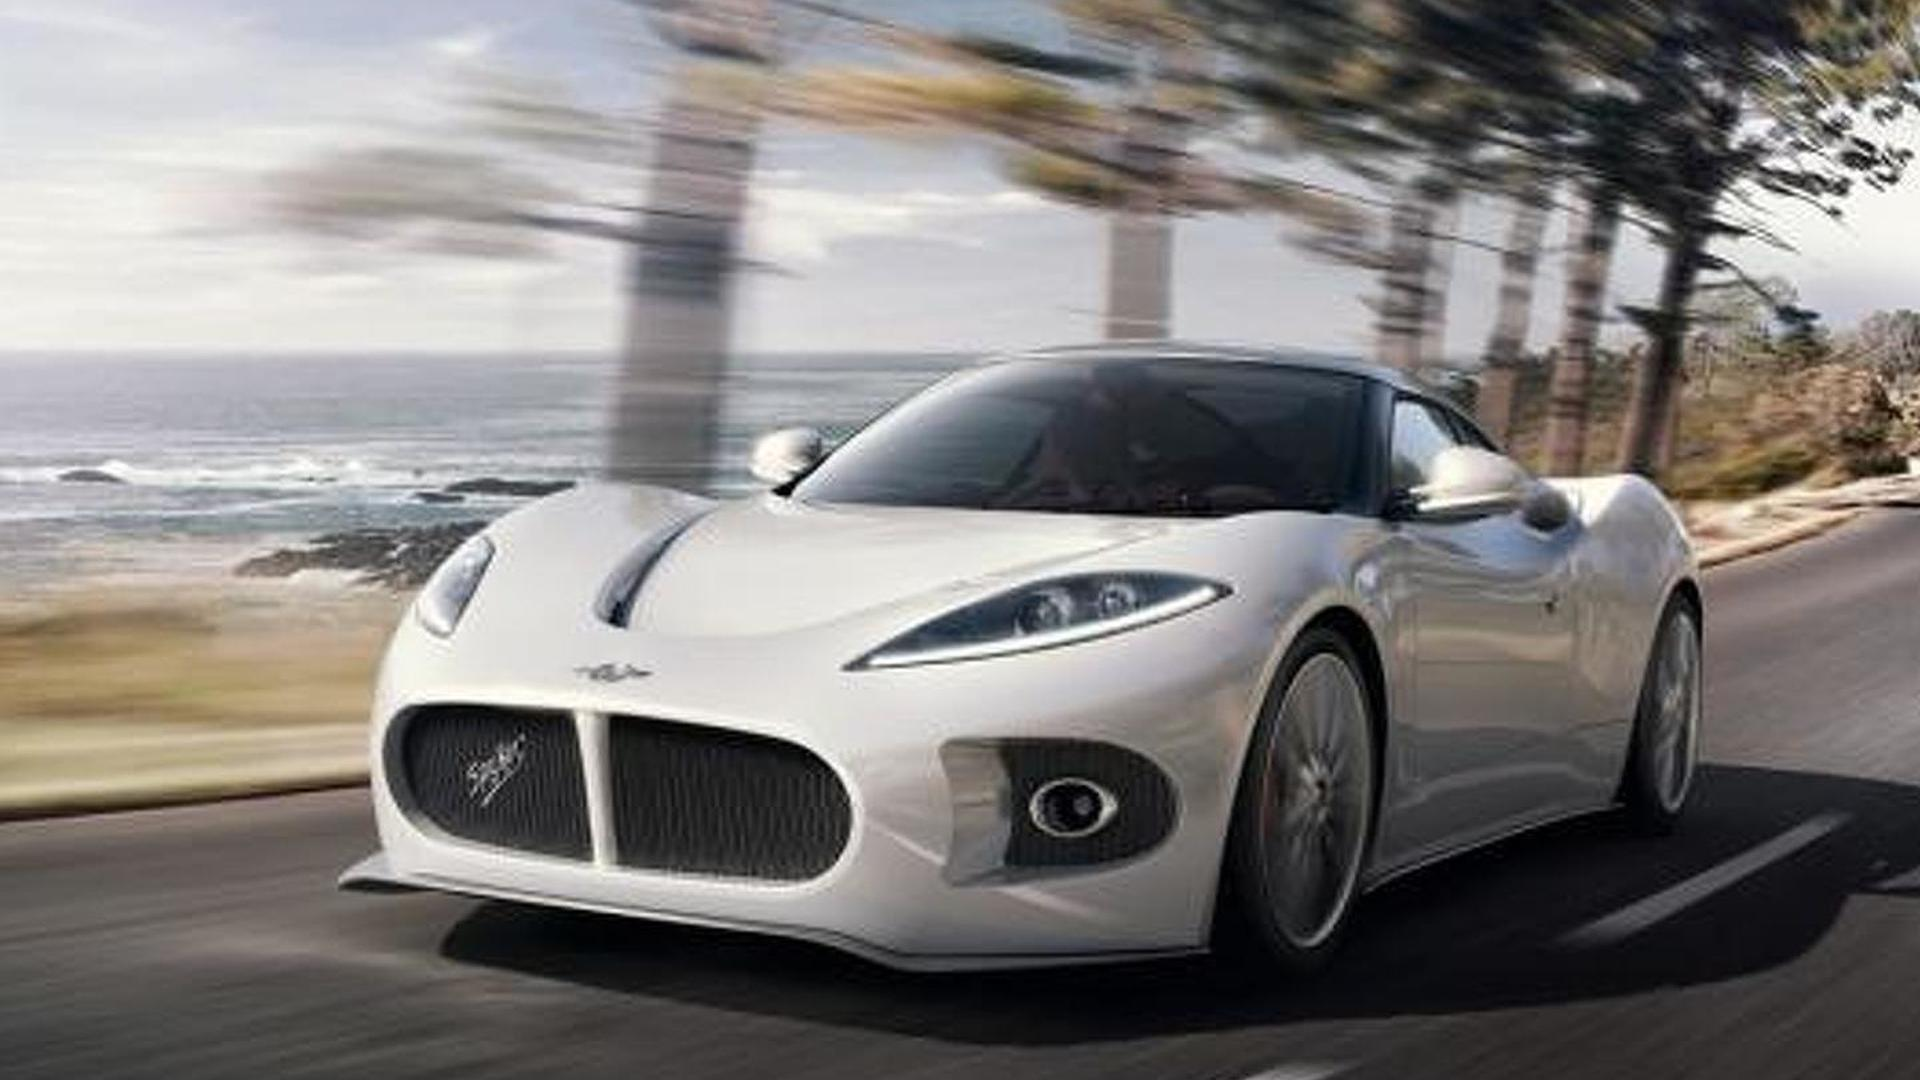 Spyker quits paying employees, is the end near?